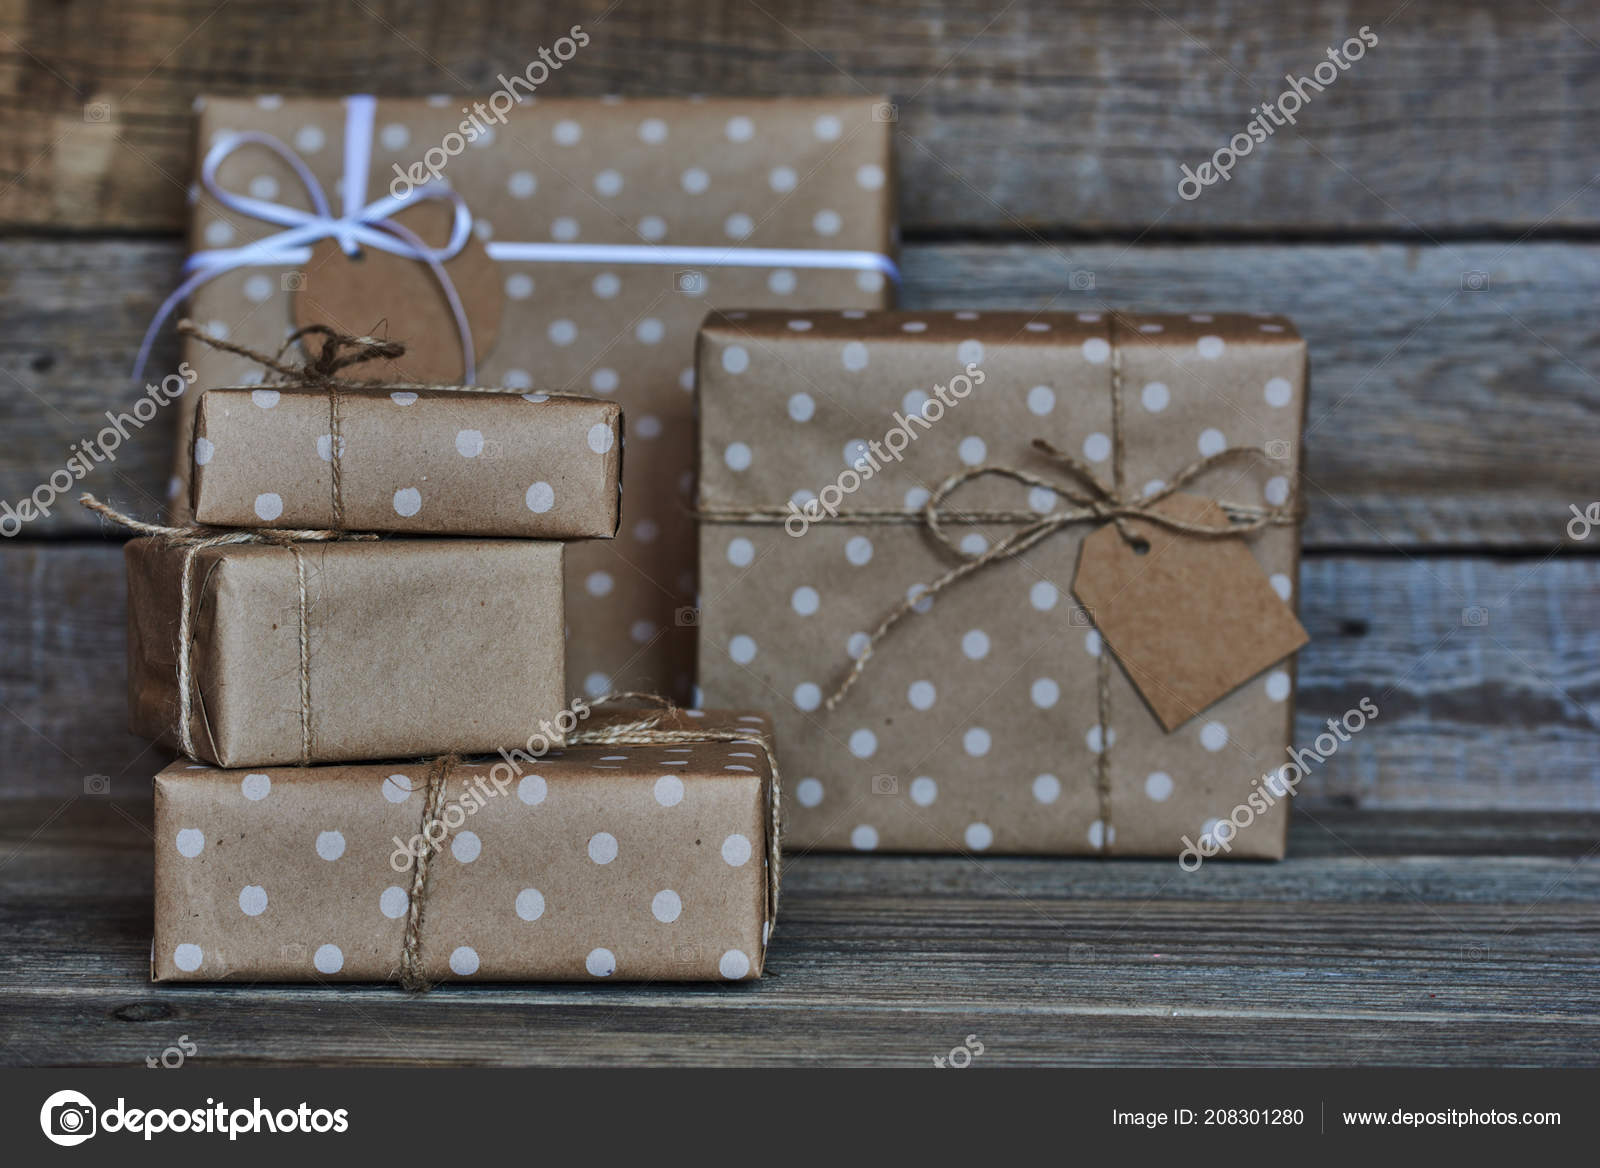 Handmade Gift Boxes Wrapped Eco Friendly Craft Paper Tied Twine